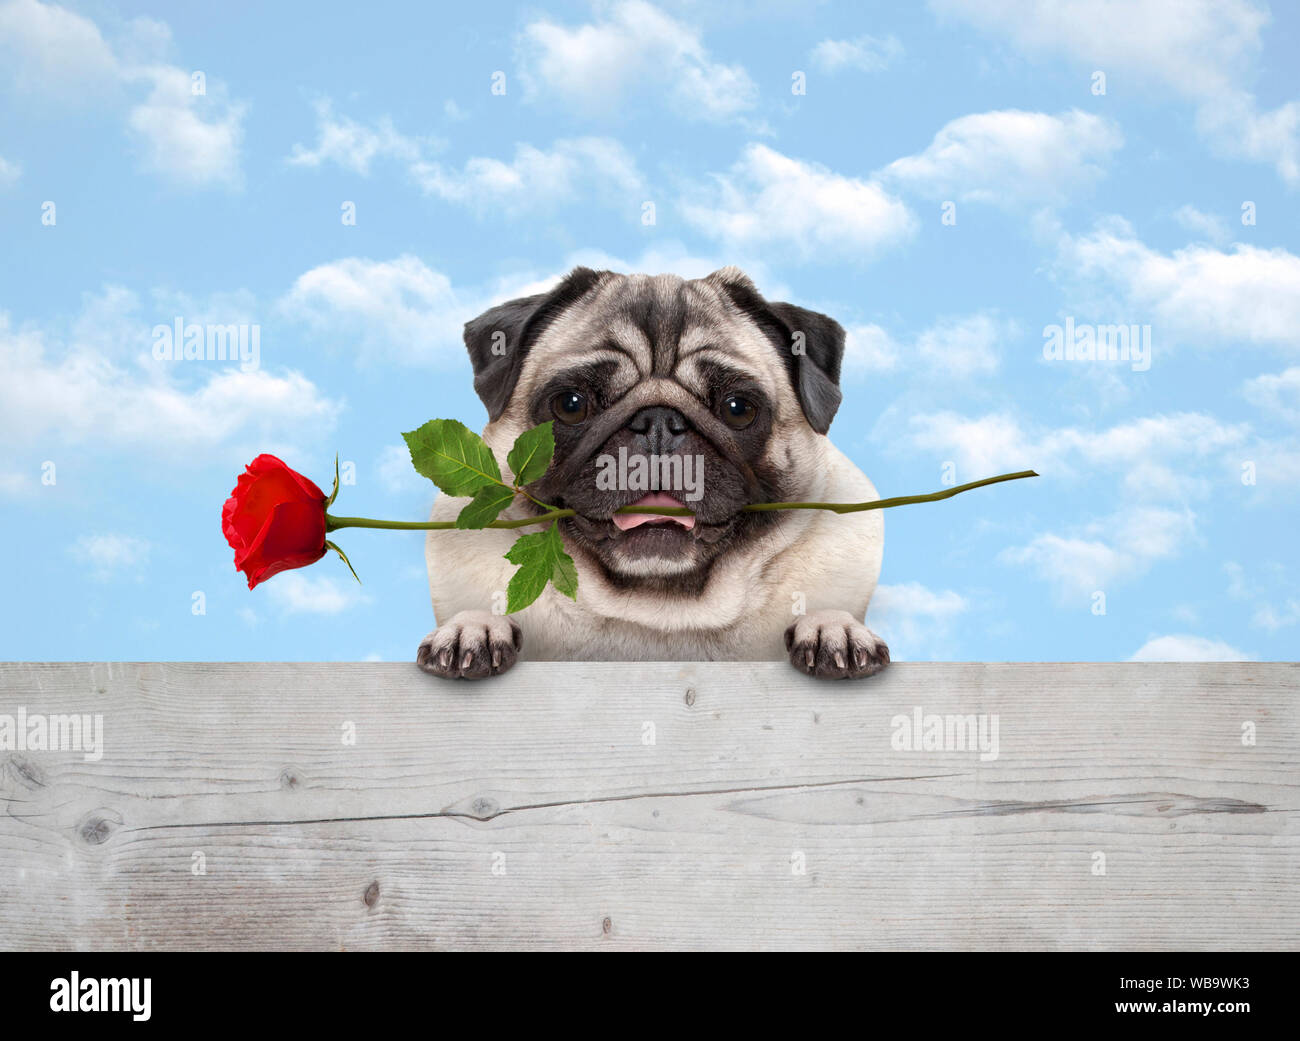 frolic cute smiling pug puppy dog with red rose in mouth, with paws on wooden fence banner, with blue sky background Stock Photo